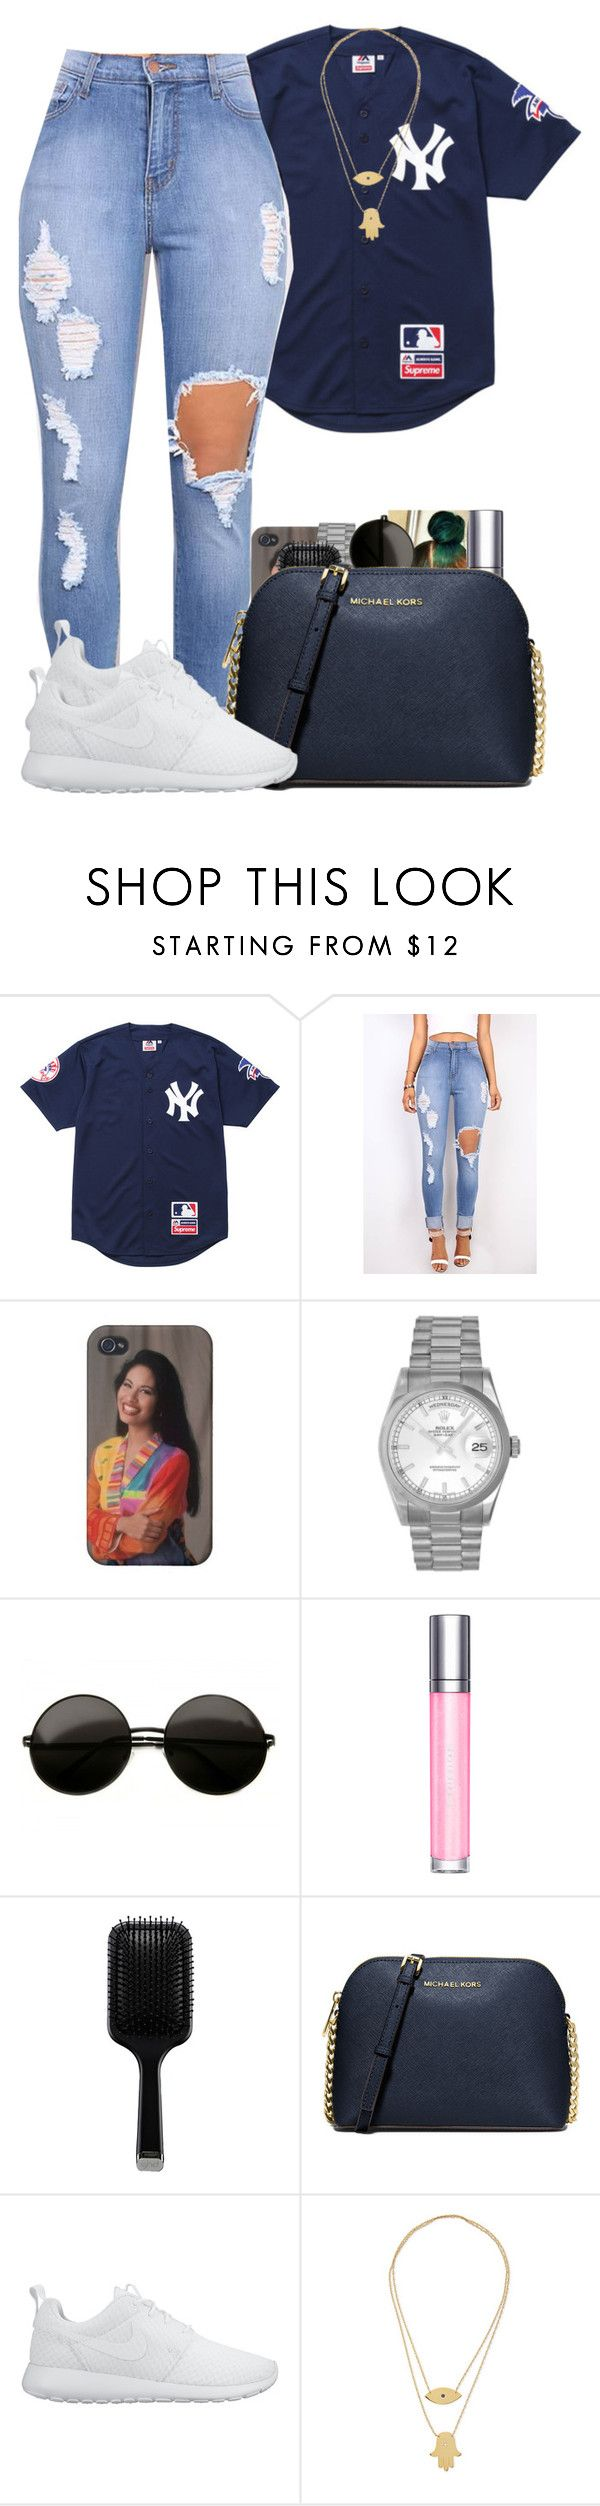 """How Bout Now"" by bryannilove ❤ liked on Polyvore featuring Supreme, Rolex, shu uemura, GHD, MICHAEL Michael Kors, NIKE and Jennifer Zeuner"